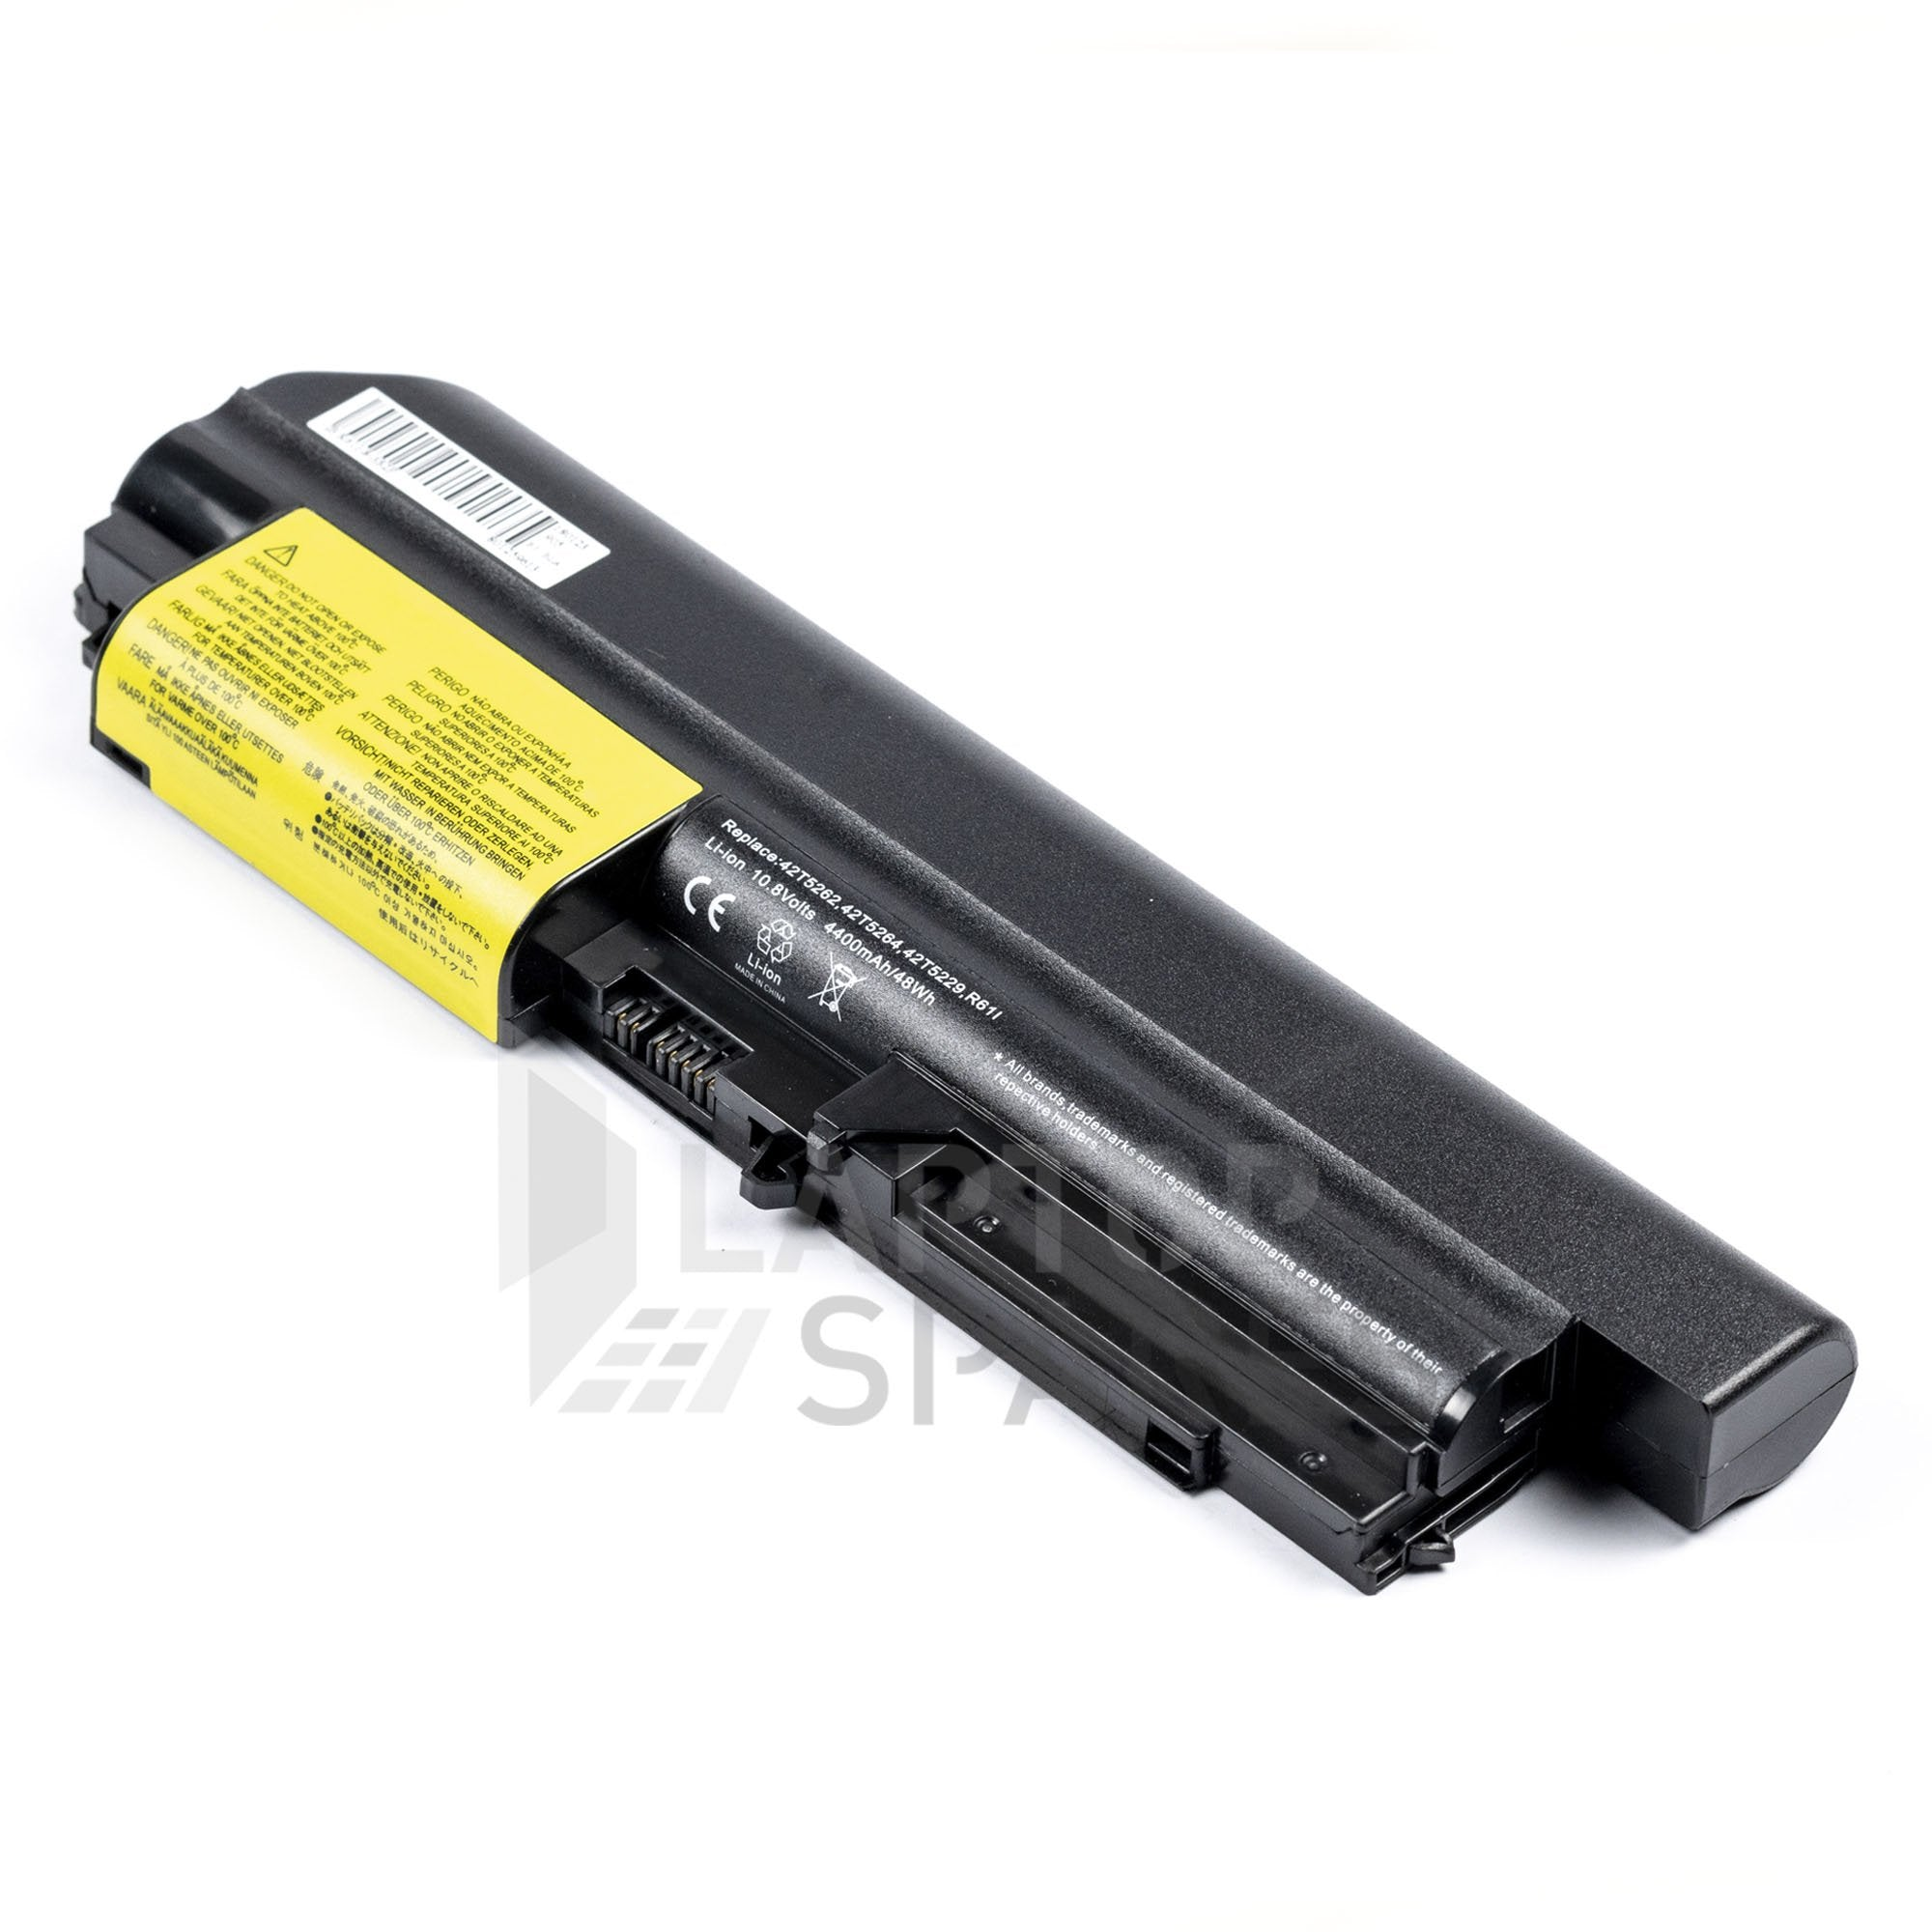 IBM 42T5263 43R2499 4400mAh 6 Cell Battery